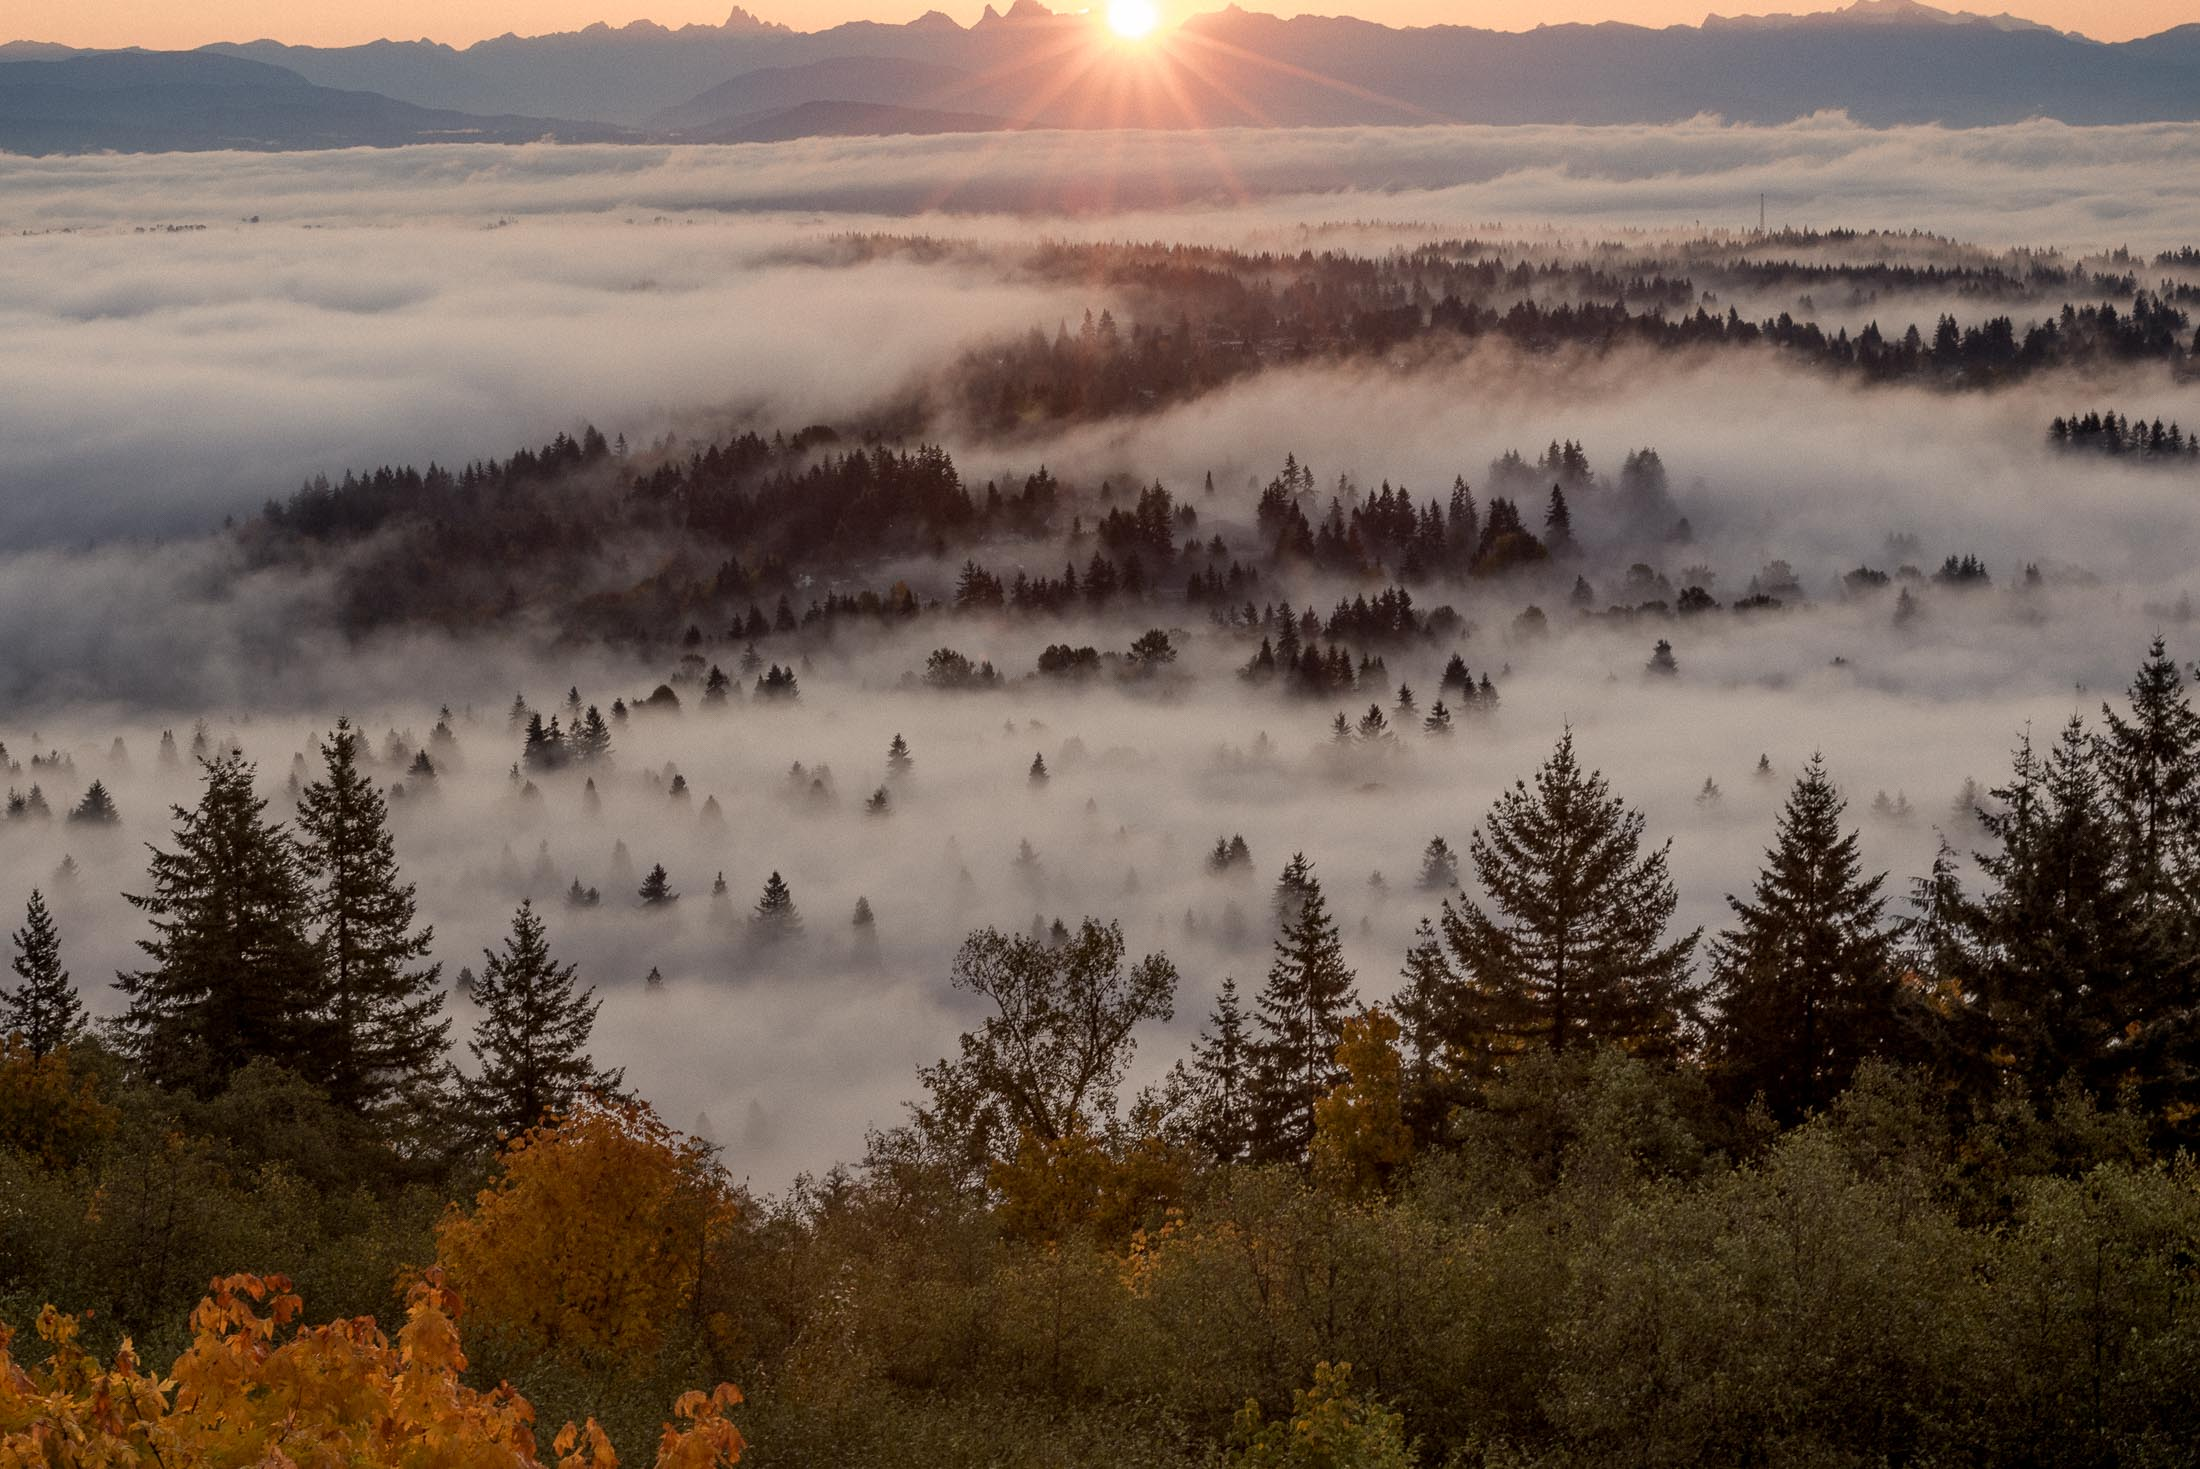 The view of Port Moody and Coquitlam from Burnaby Mountain. The sun rises behind Mount Baker.